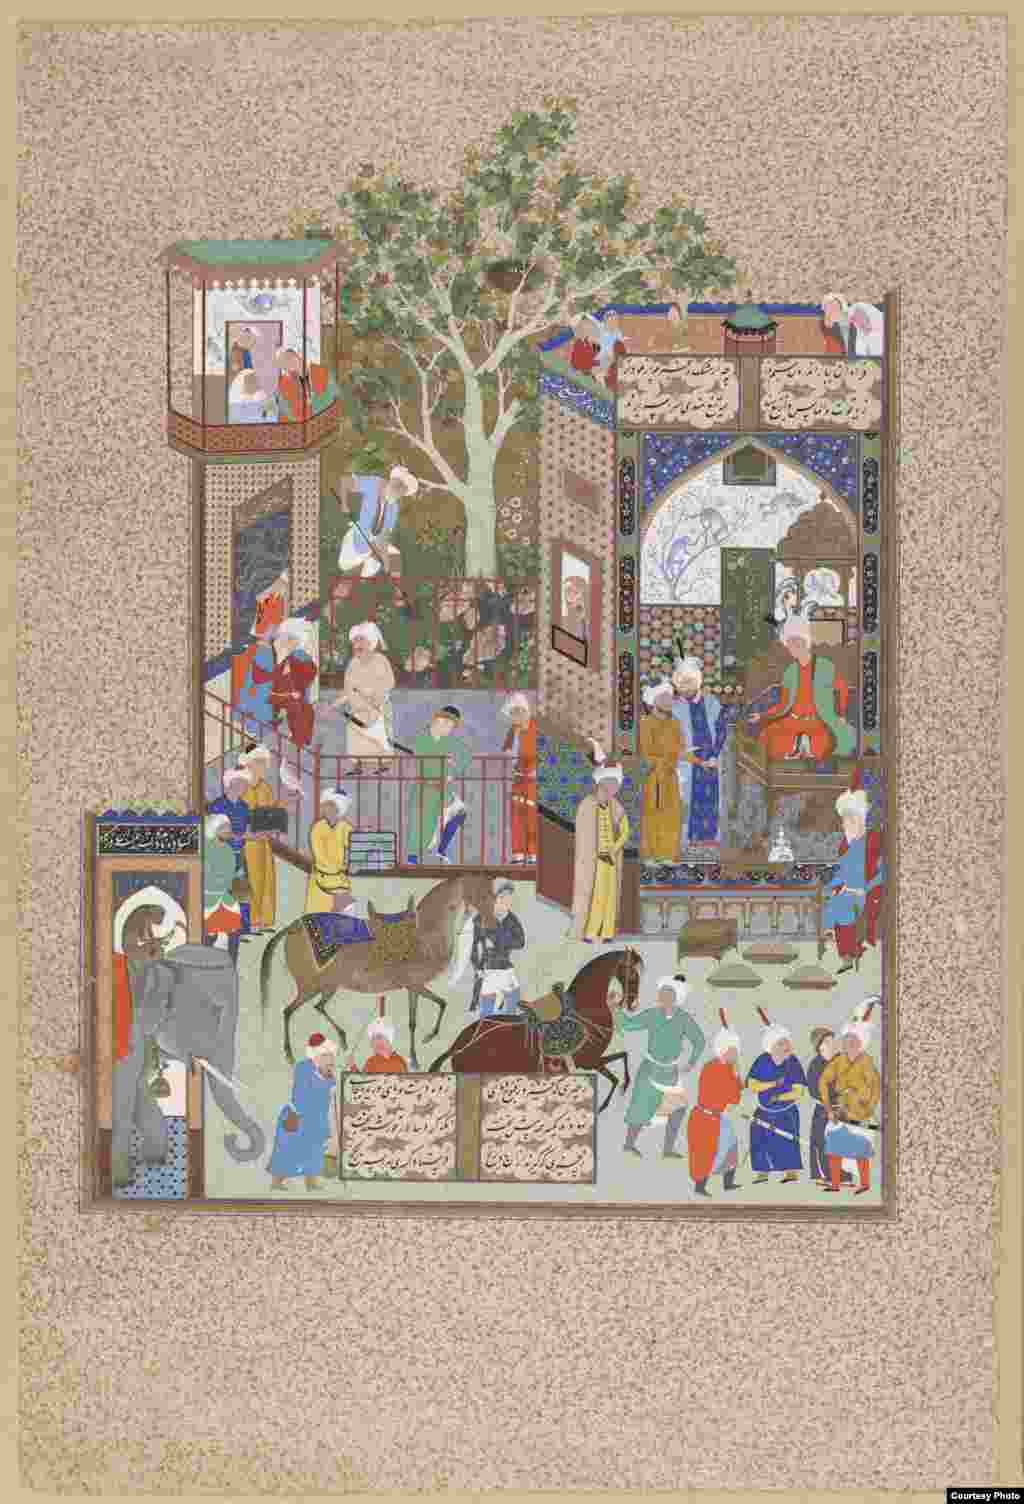 "Ferdowsi's poem stops at the 7th-century Islamic conquest of Persia, probably, scholars says, because he ran out of time to record events beyond that point. ""Nurshivan Receives An Embassy From The Ray Of Hind,"" Tabriz, Iran, circa 1520s, from ""The Shahnameh"" (Book of Kings) by Firdawsi Photos courtesy of the Smithsonian Institute, Washington, D.C."